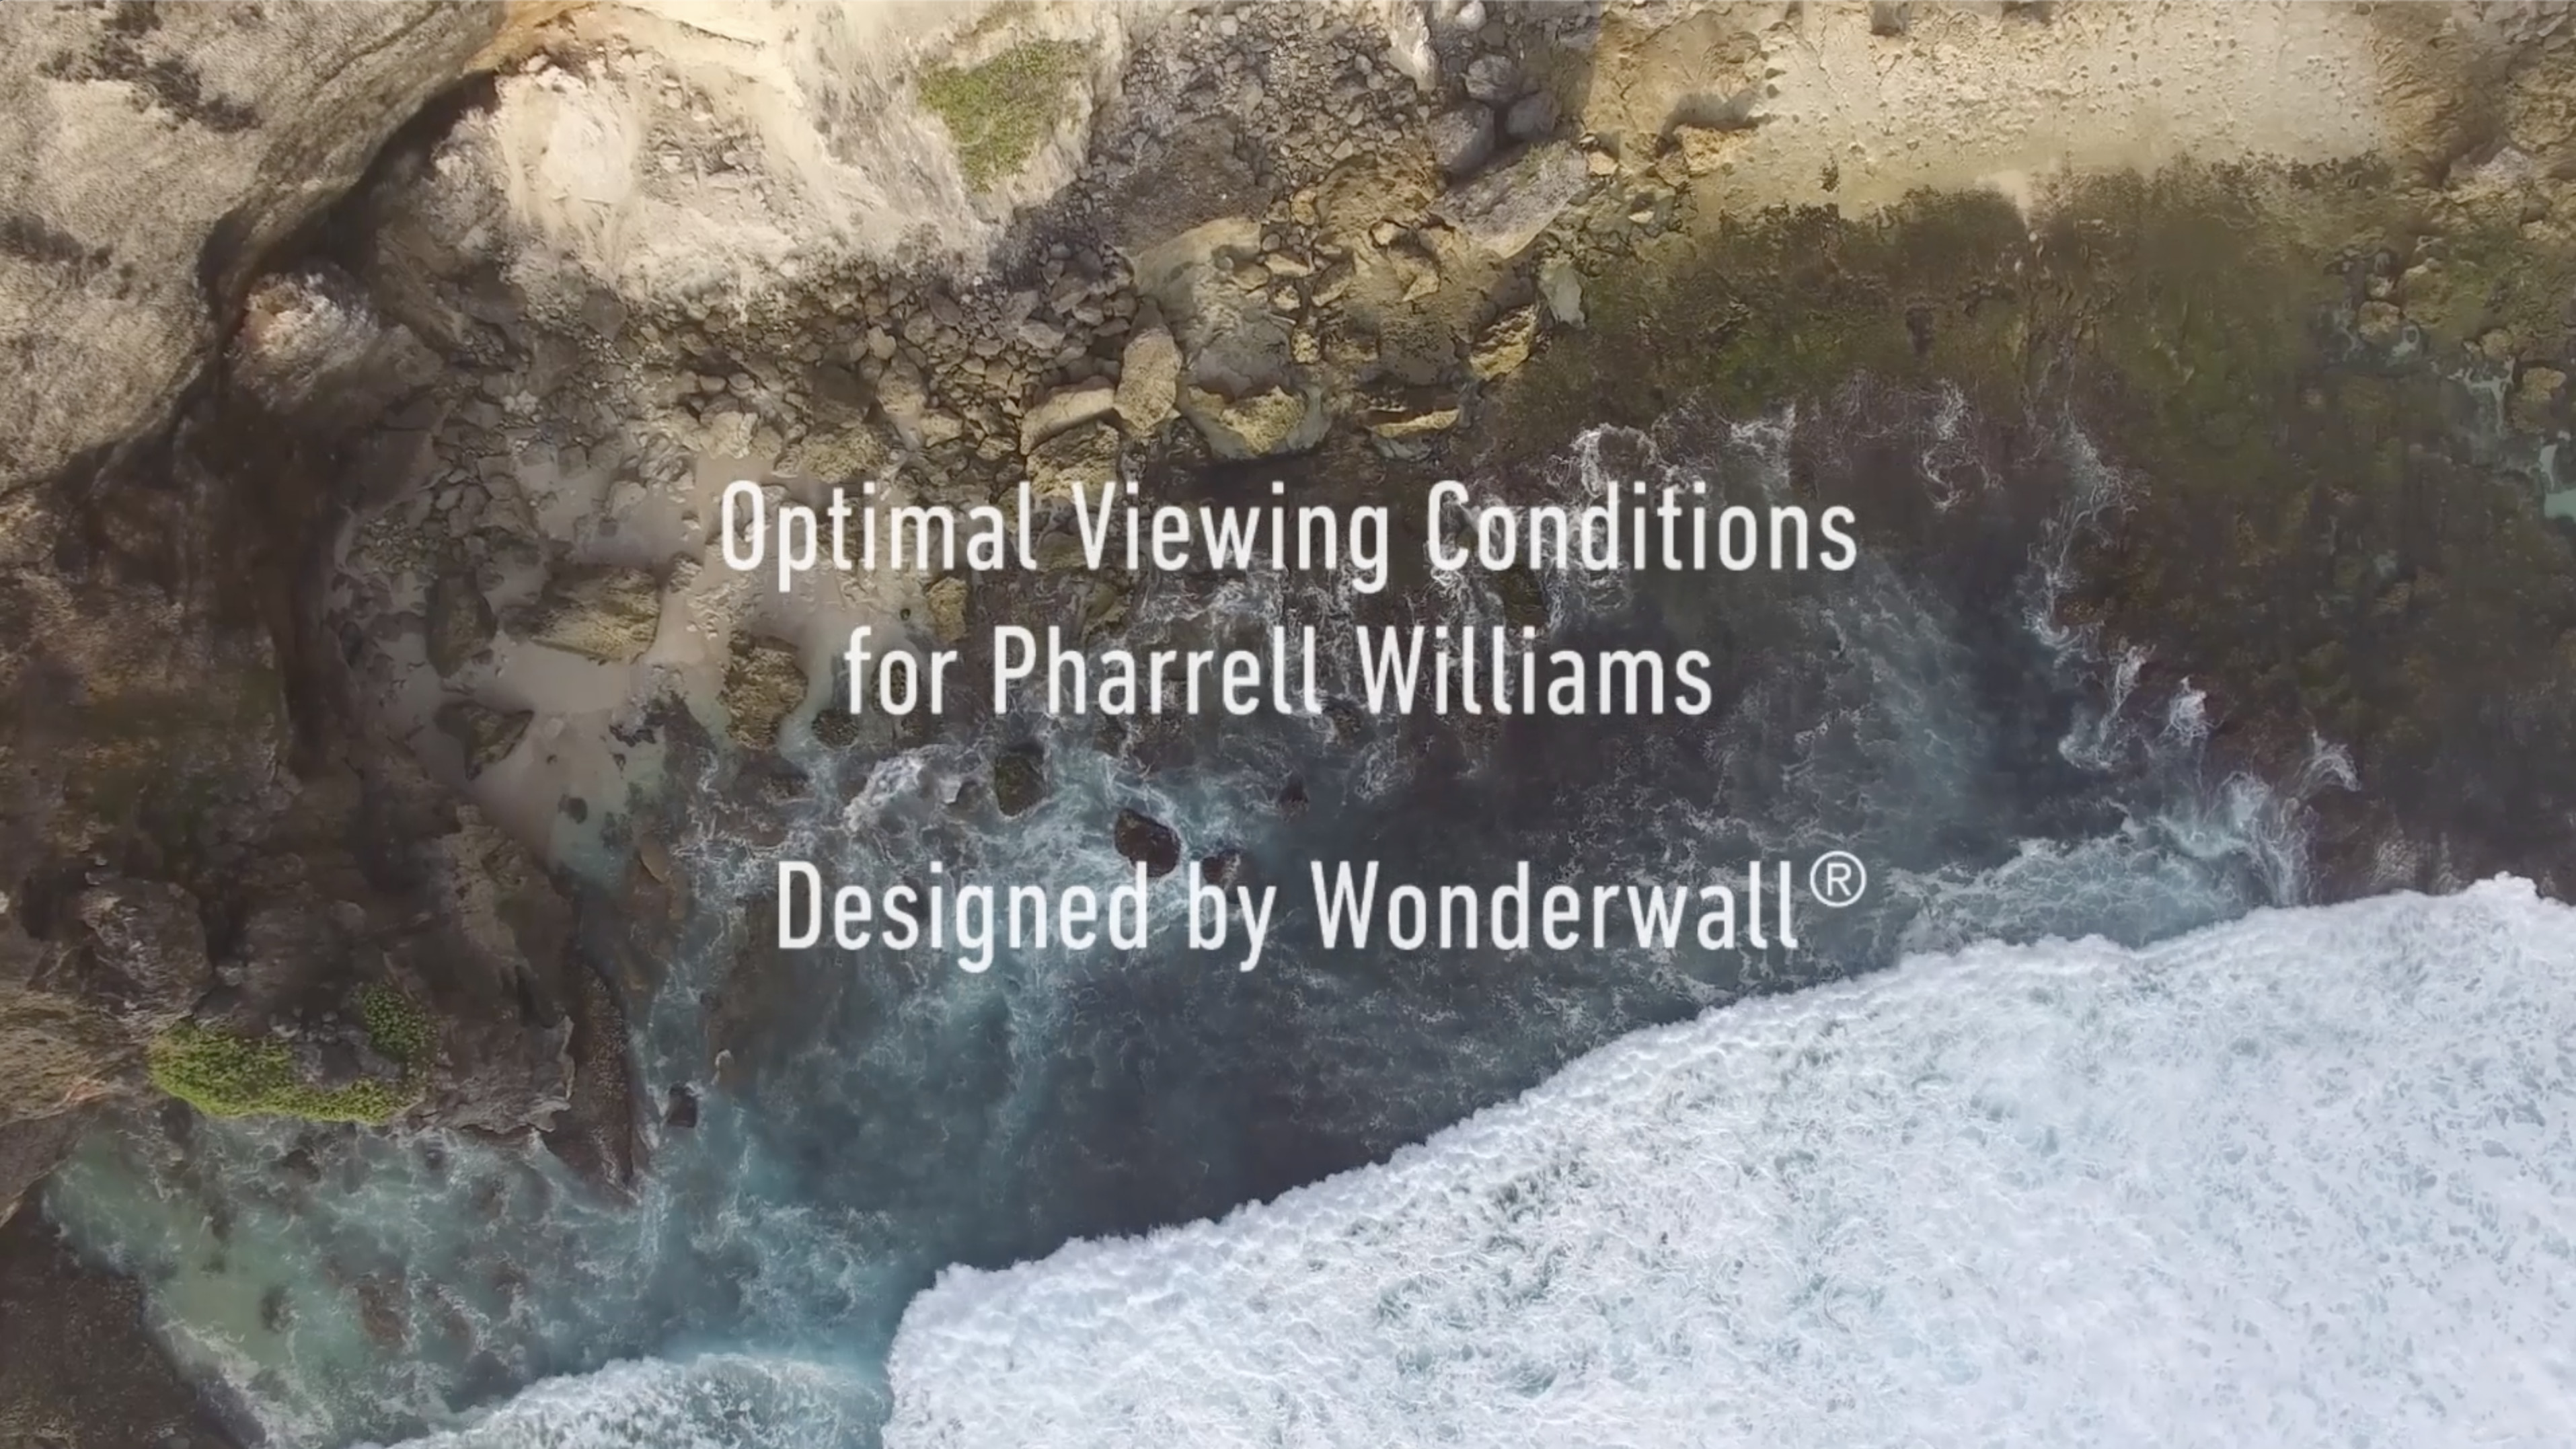 「Optimal Viewing Conditions」のサウンドをNFが担当